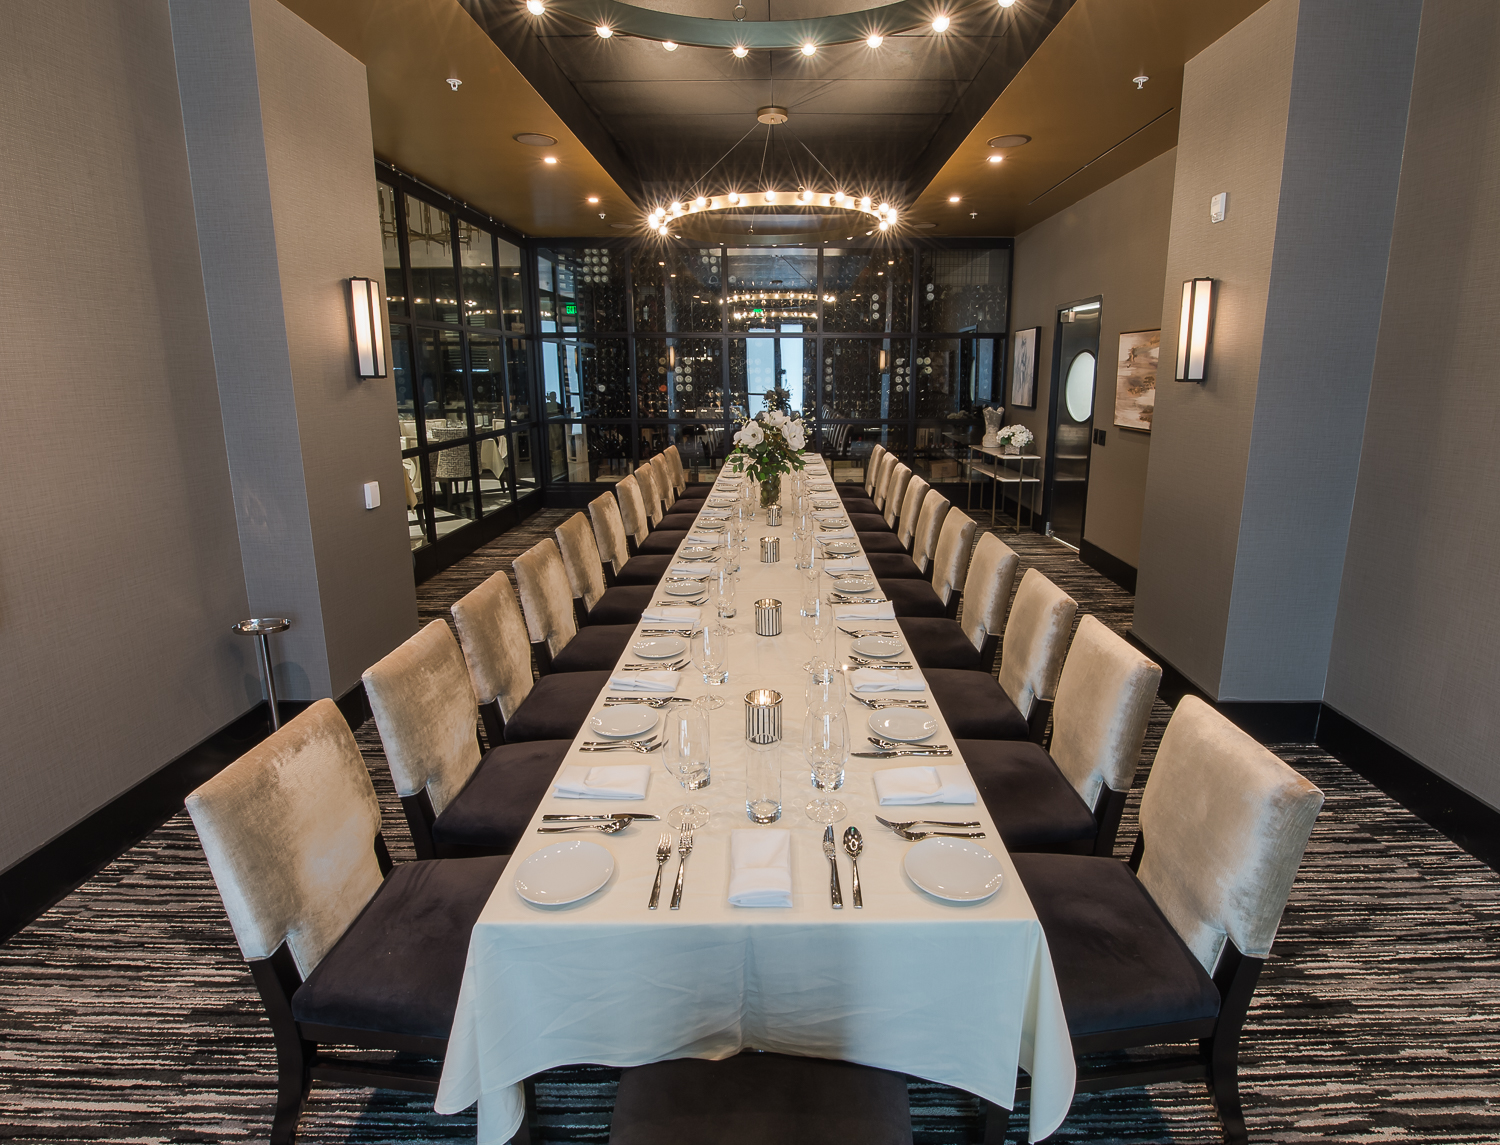 ... Tour Of The Private Dining Rooms Or To Answer Any Of Your Questions.  Call 713.237.1515 Or Email Events@potentehouston.com And We Will Be In  Contact With ...